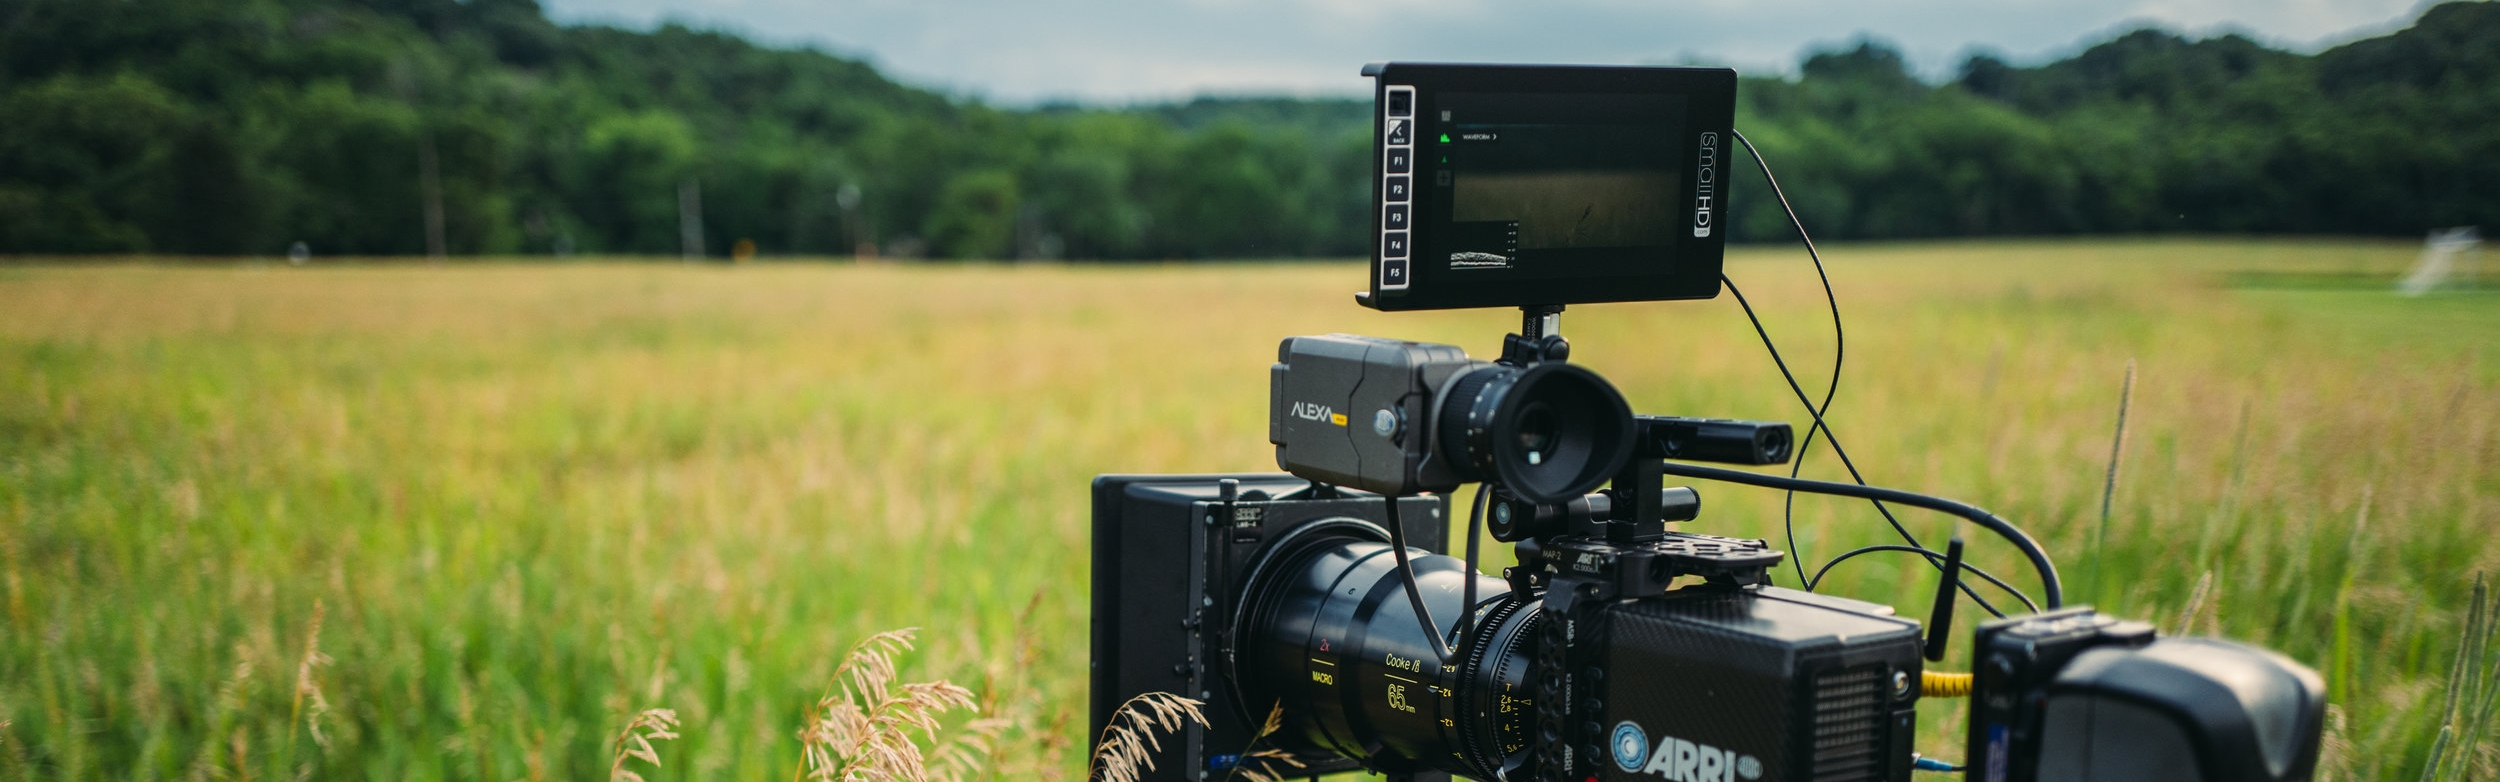 SmallHD 703 UltraBright